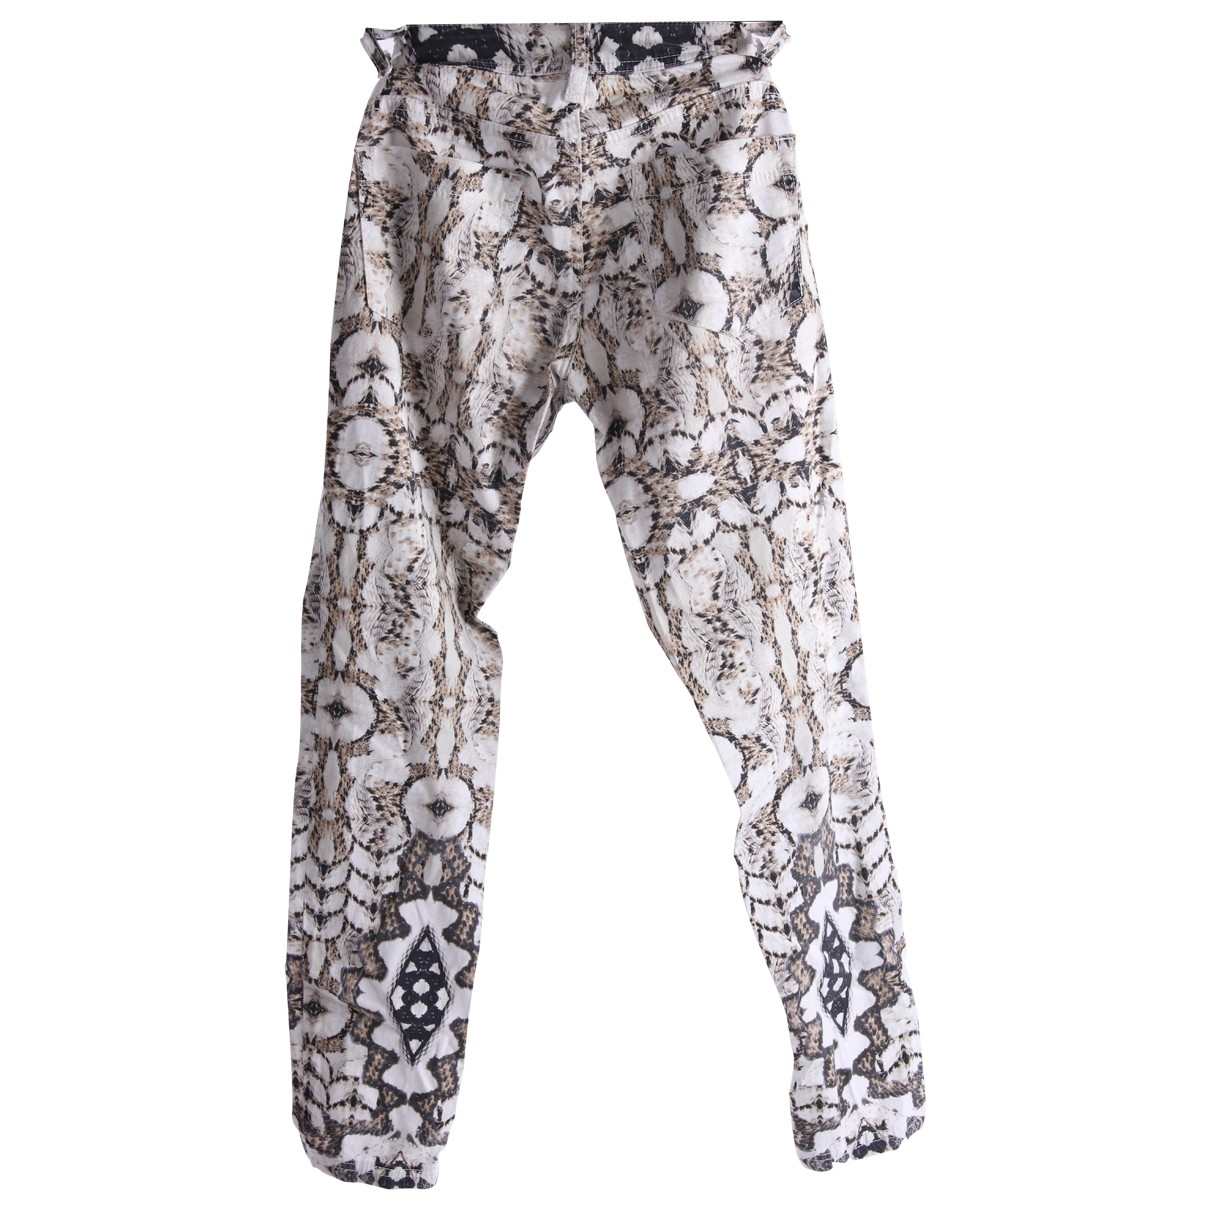 Just Cavalli \N Multicolour Cotton Trousers for Women One Size US